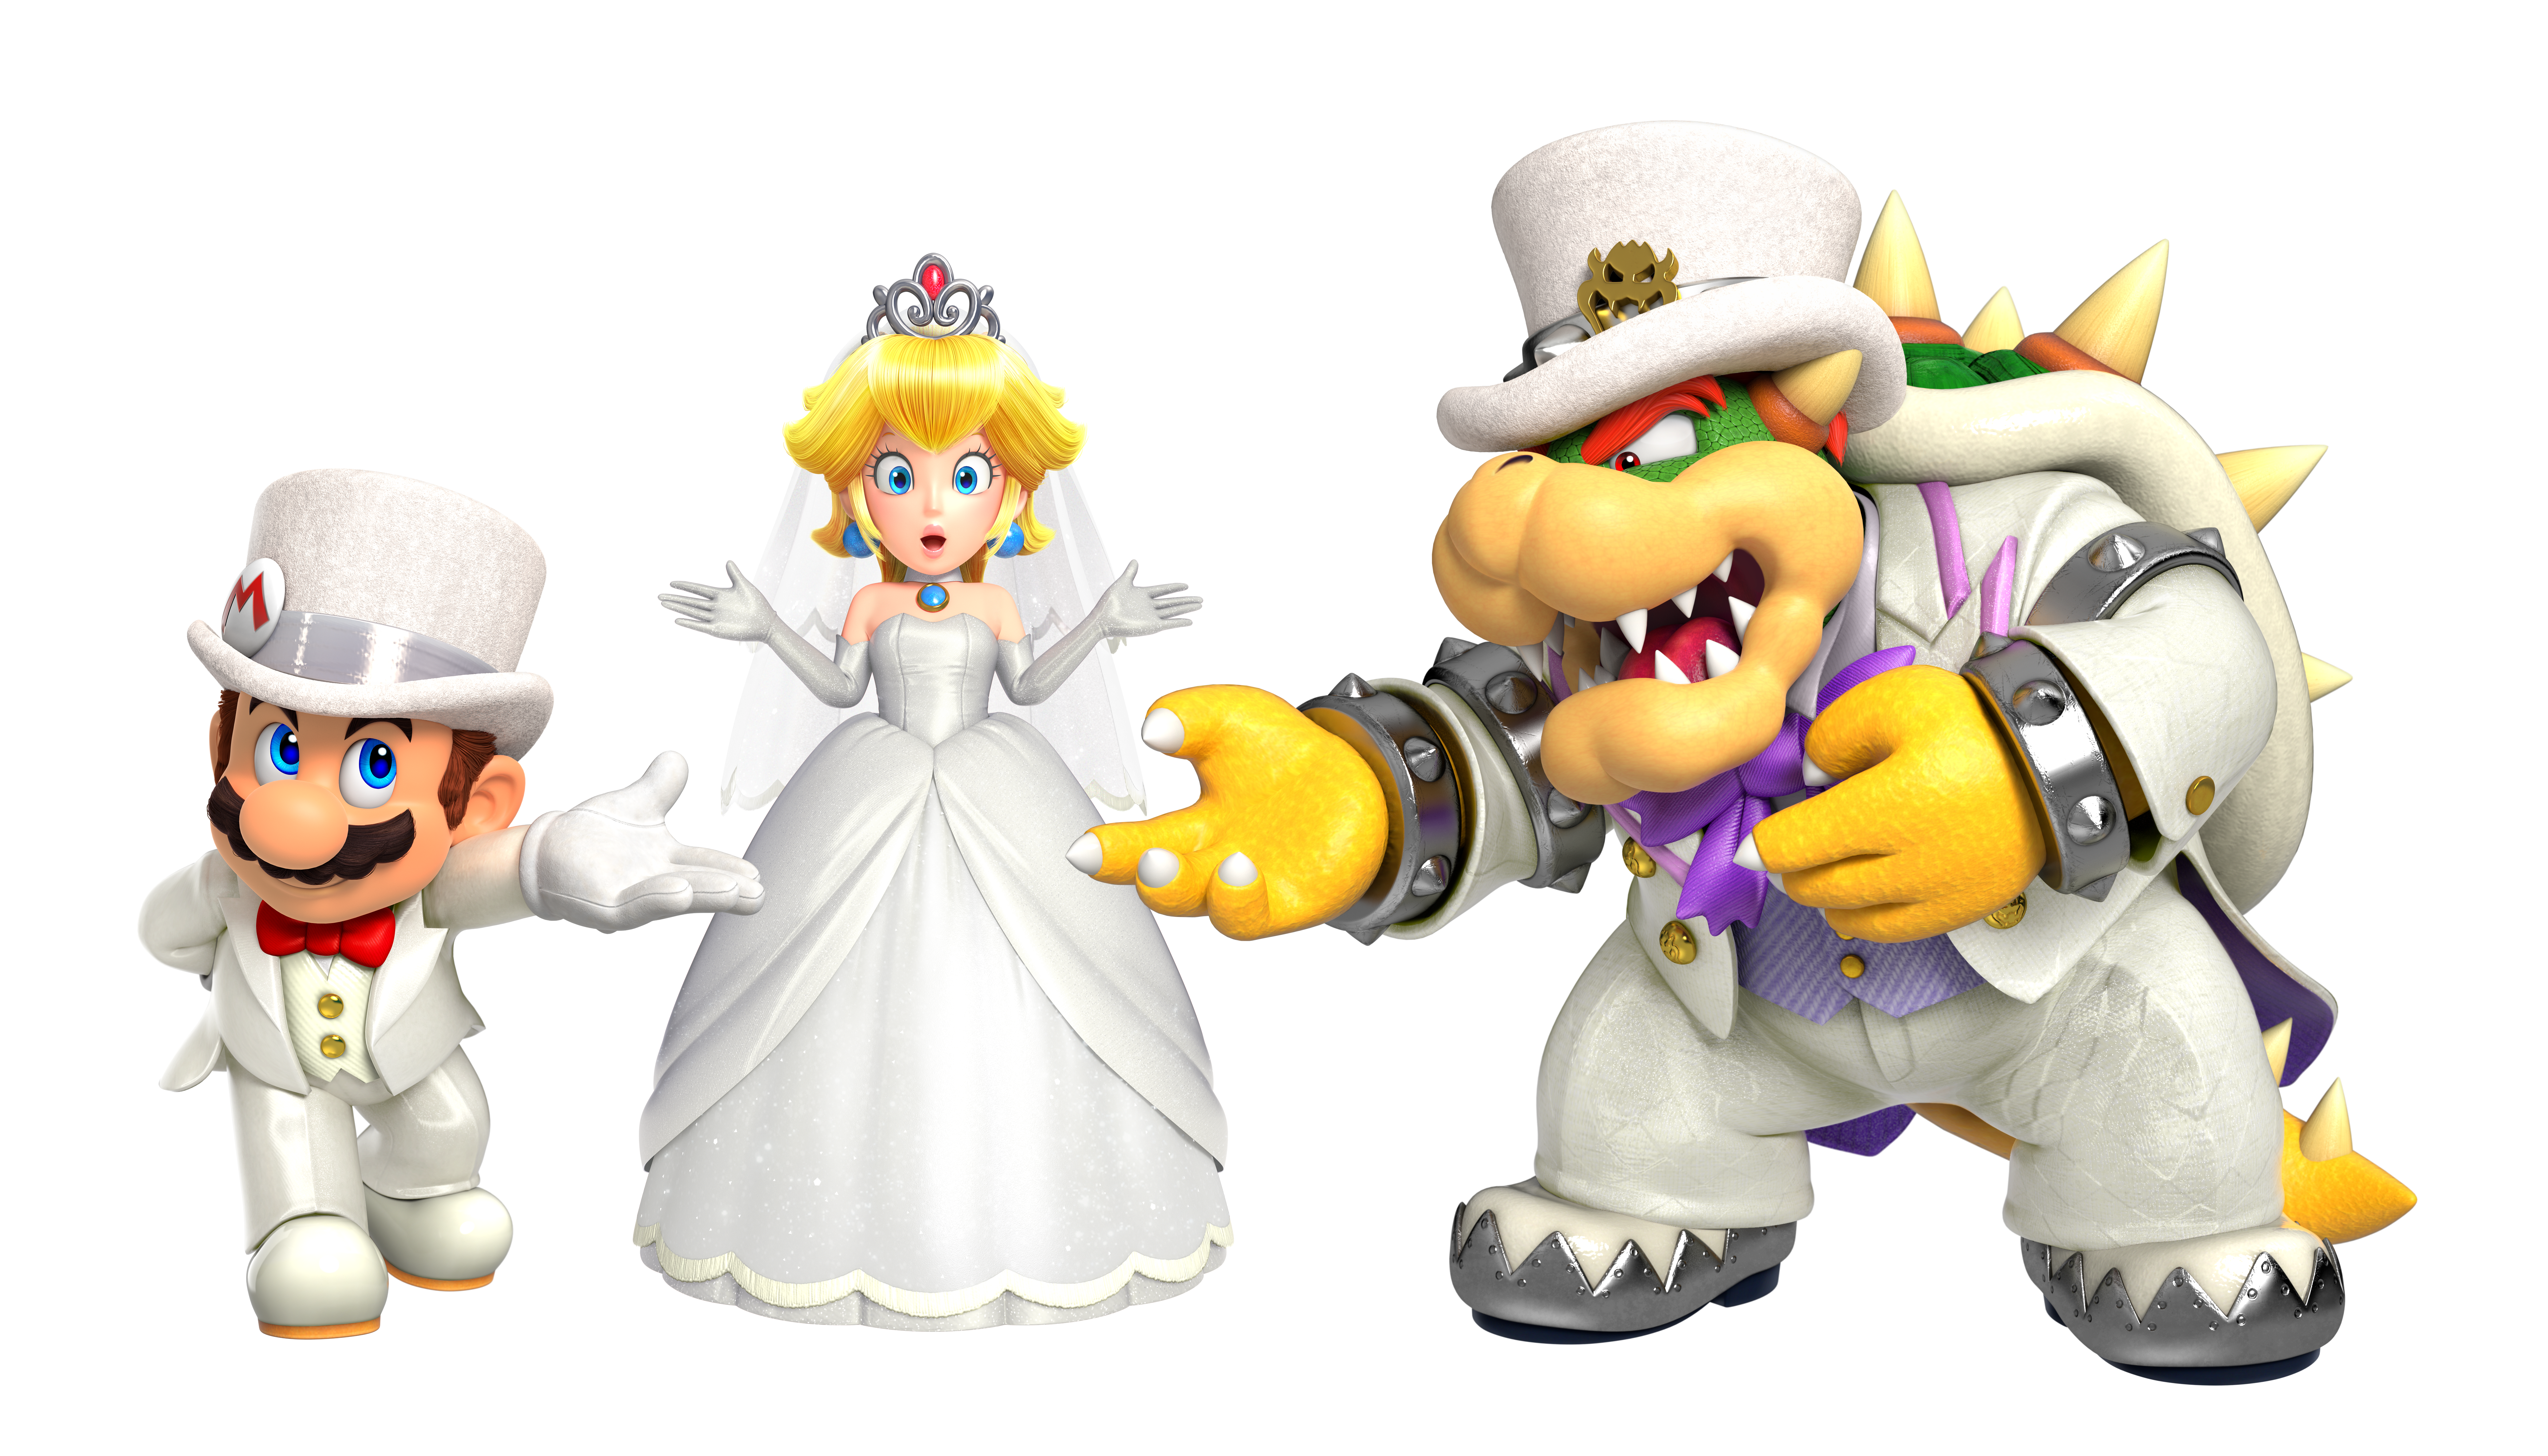 Super Mario Odyssey Month Concludes On Nintendo Minute With